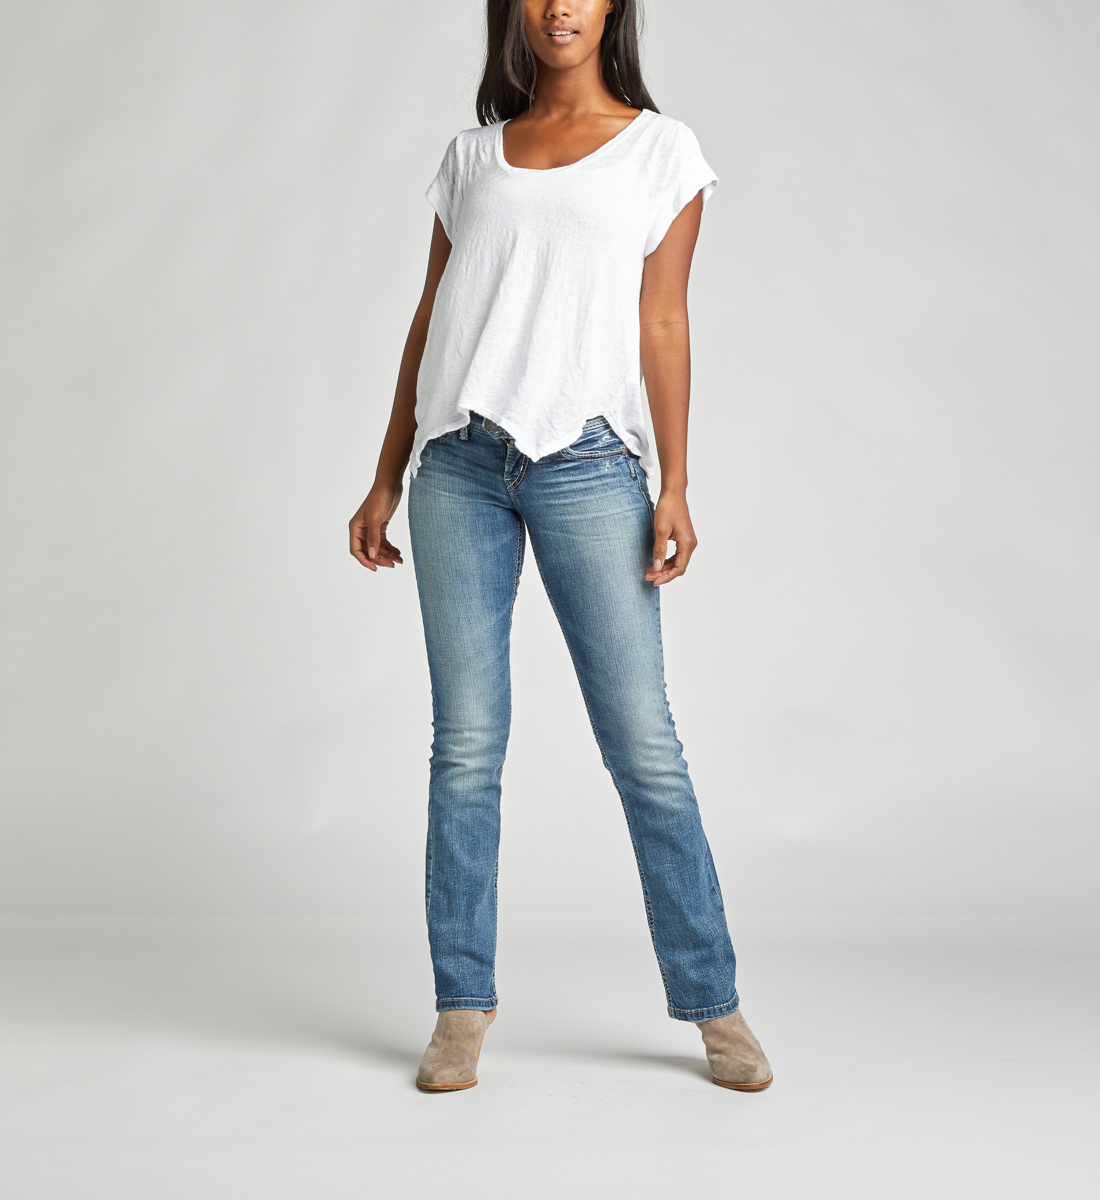 Silver Jeans Tuesday Low Rise Slim Bootcut Jeans